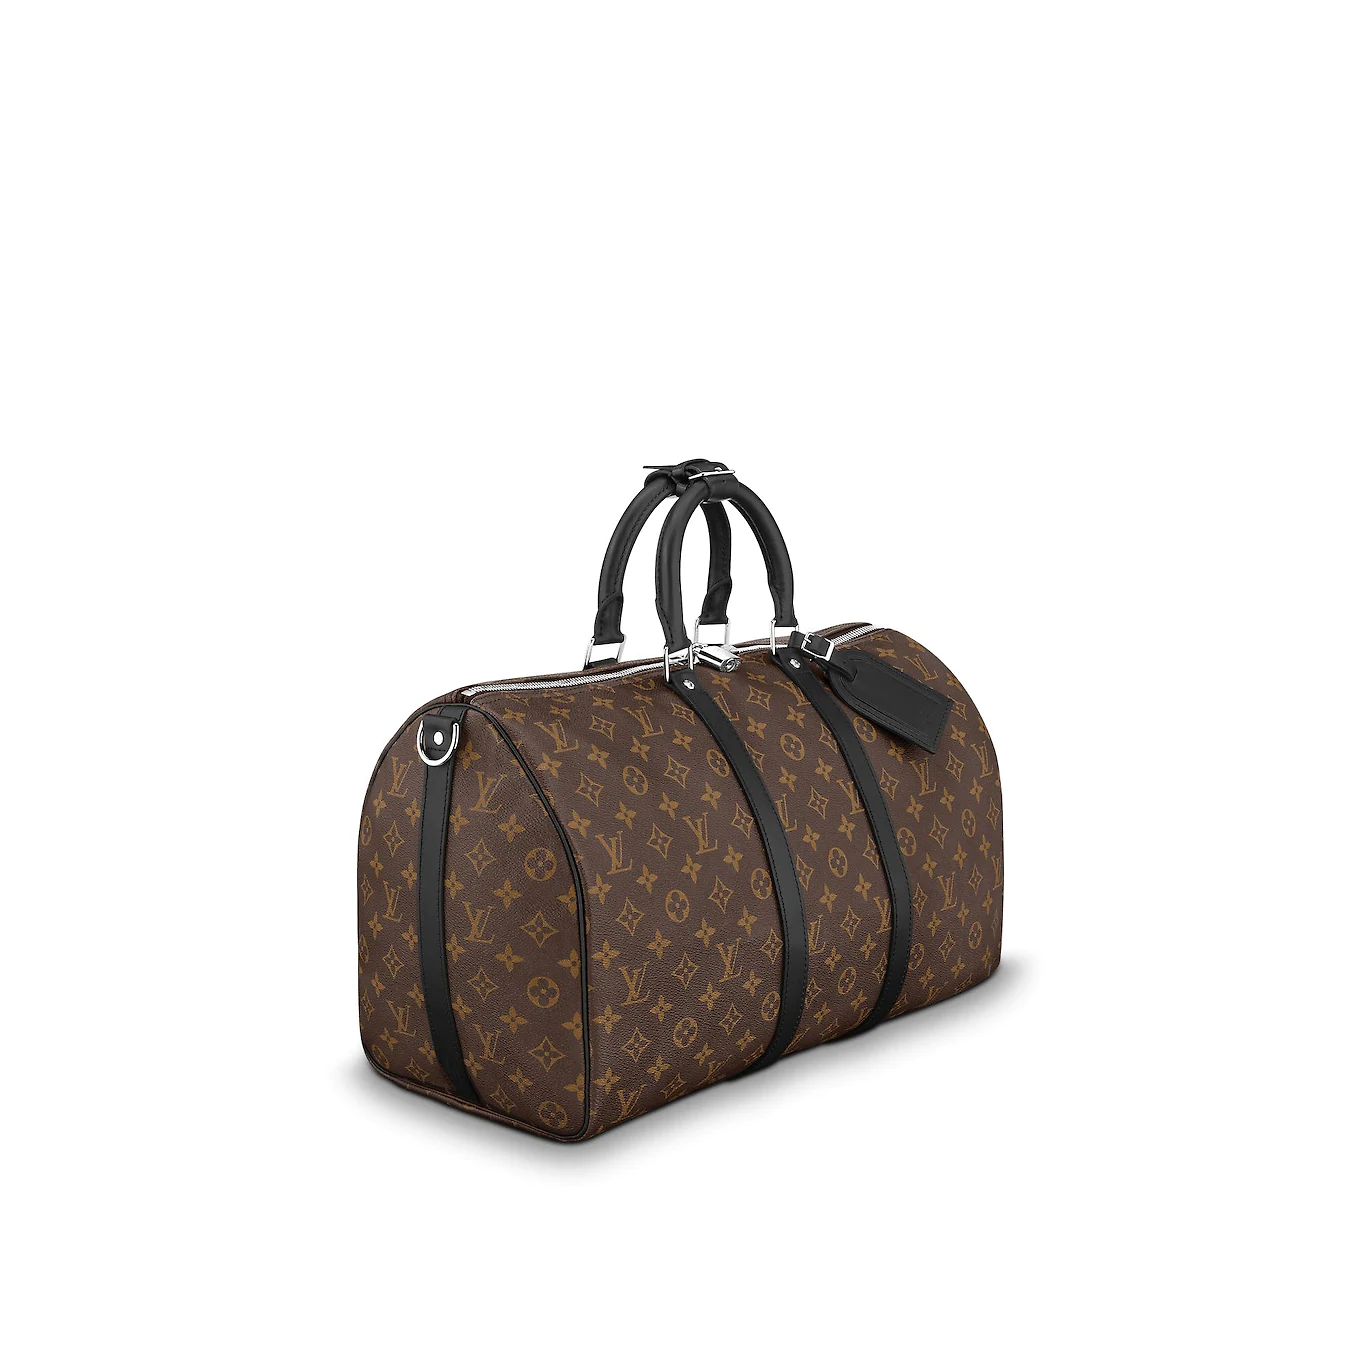 70f82a2dd0c6 LV KEEPALL BANDOULIÈRE - Luxe Couture Co